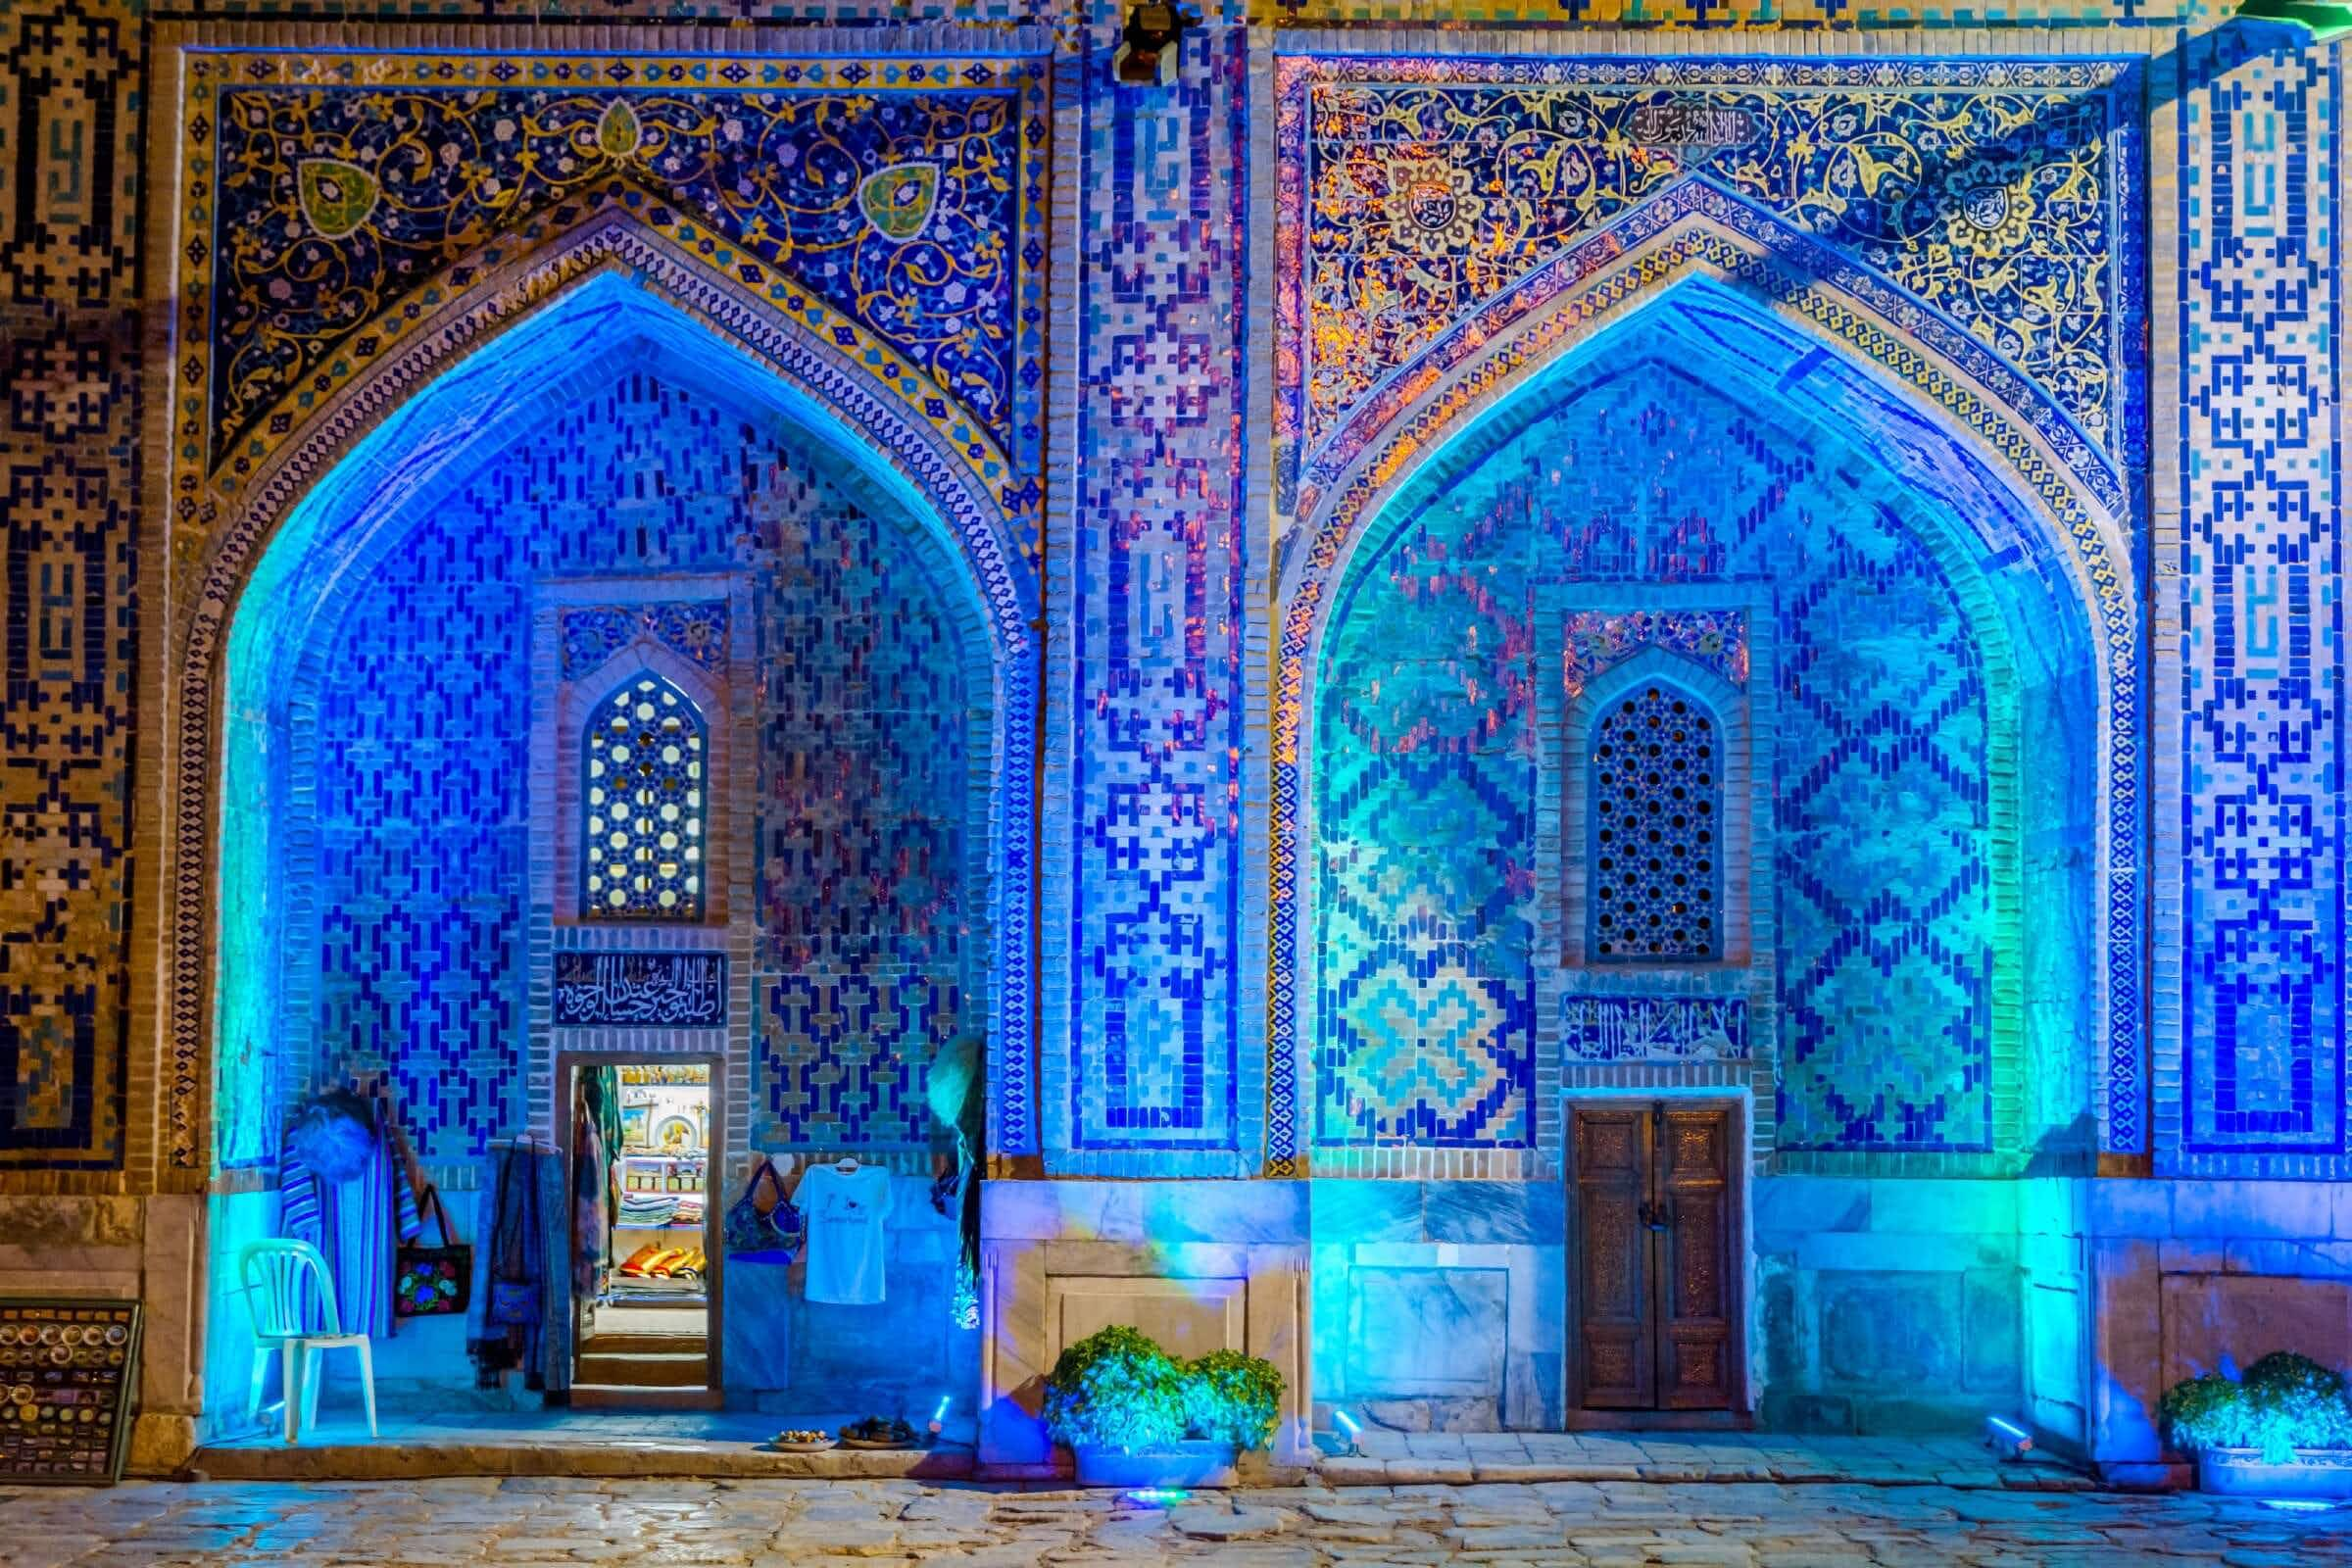 It's simpler to visit Uzbekistan with a new visa-free scheme